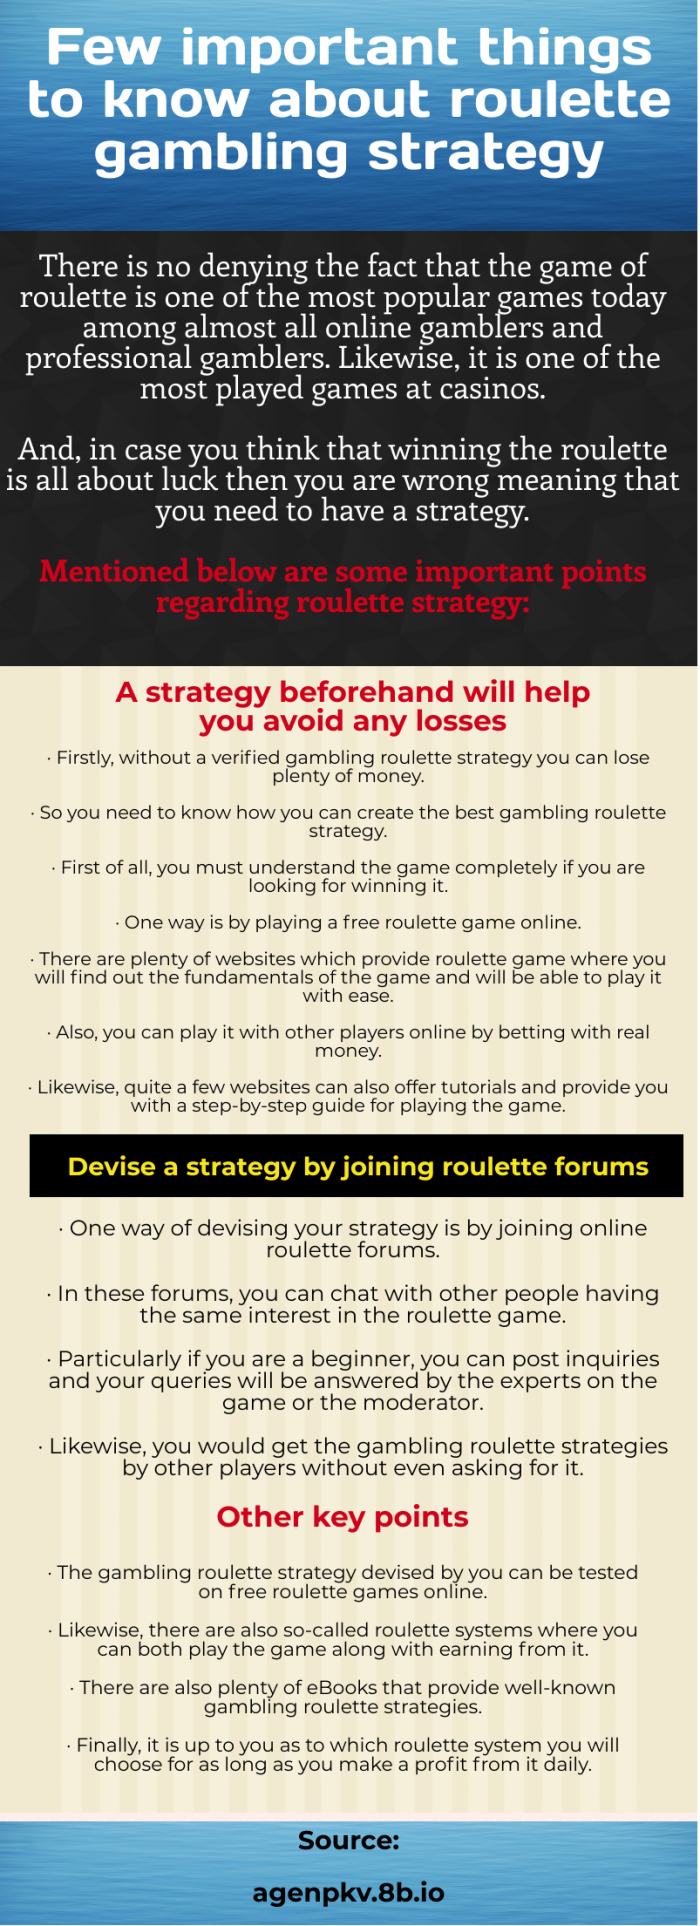 Want to increase your winning chances at online gambling